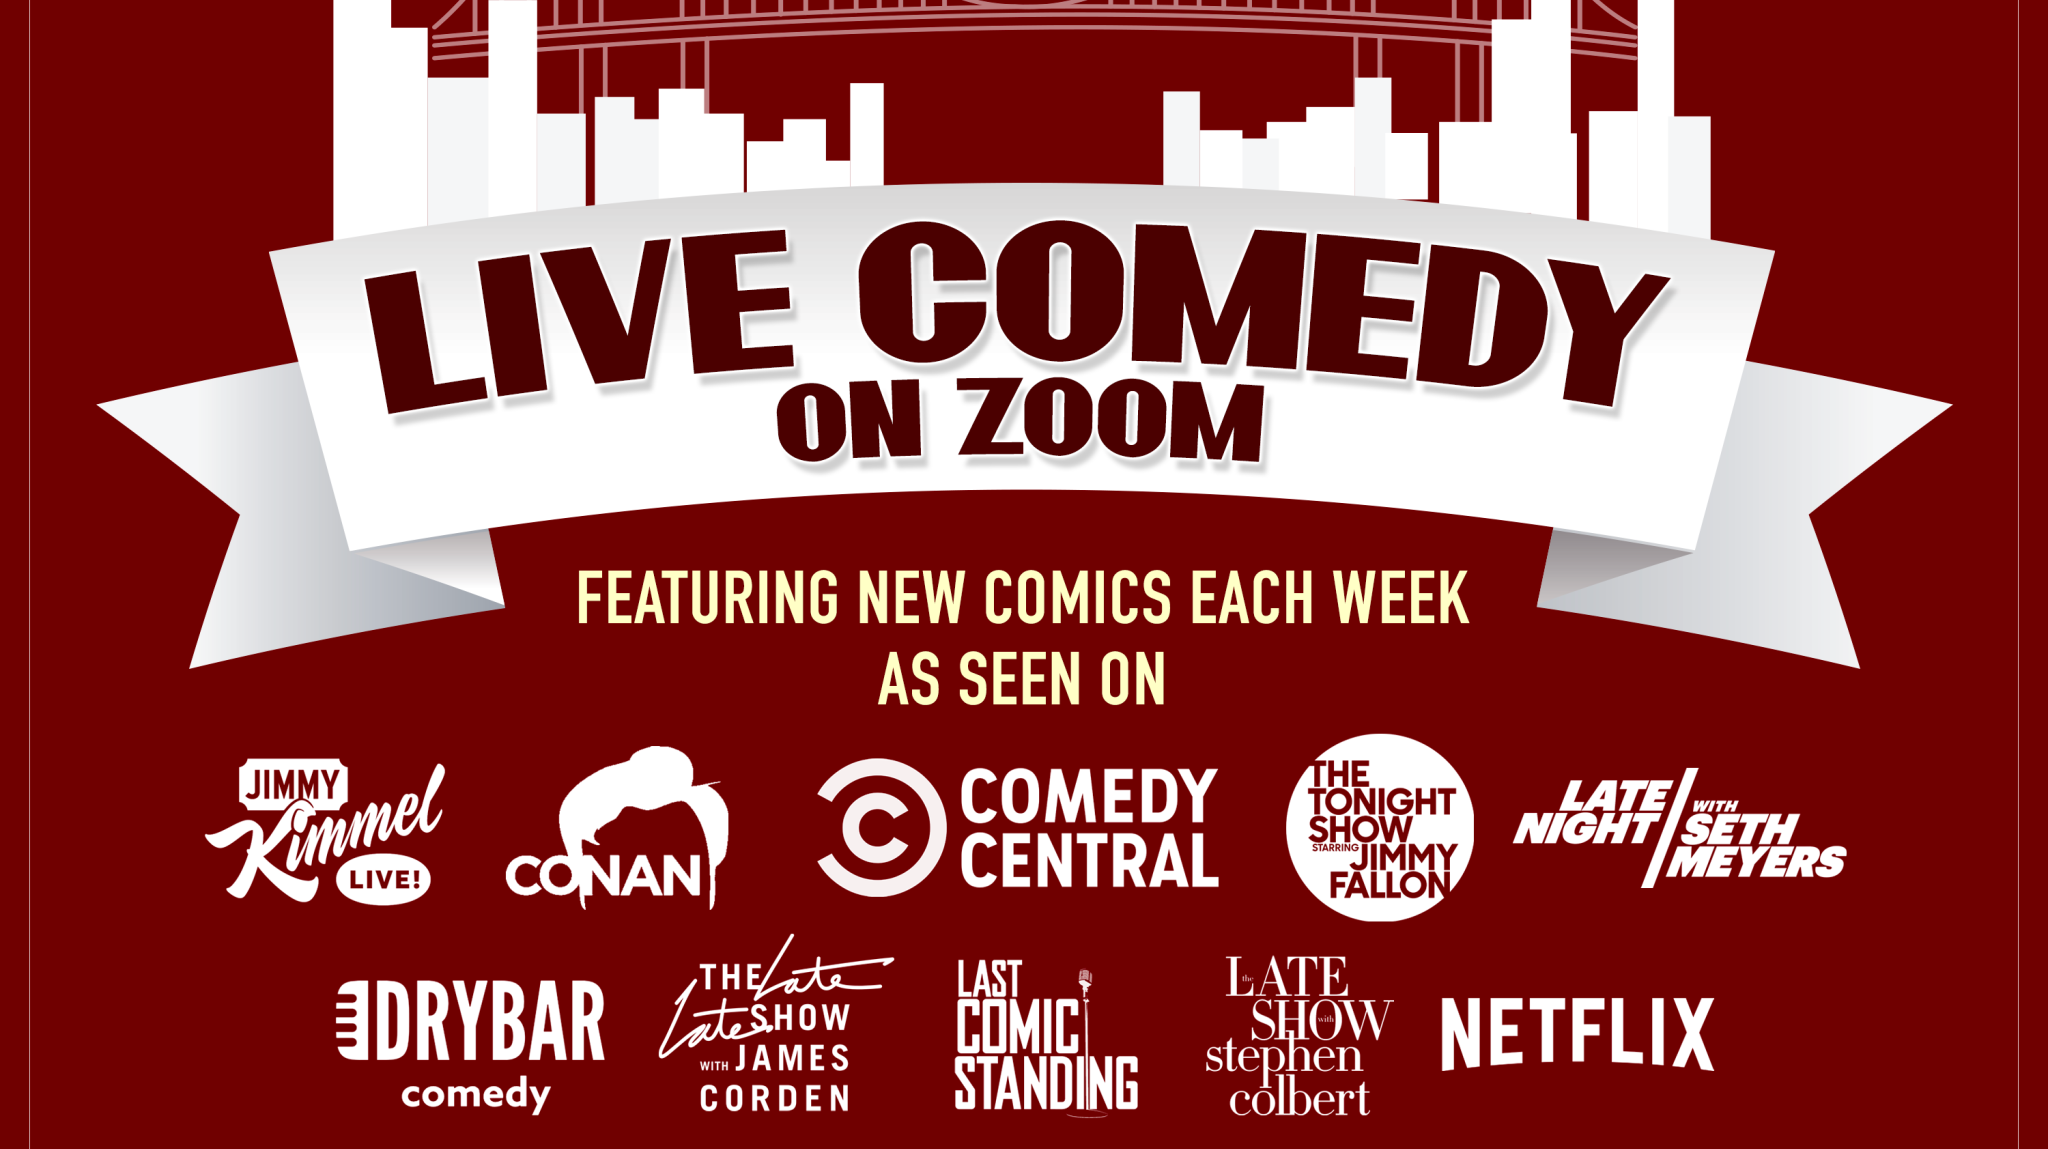 Live Comedy On Zoom!